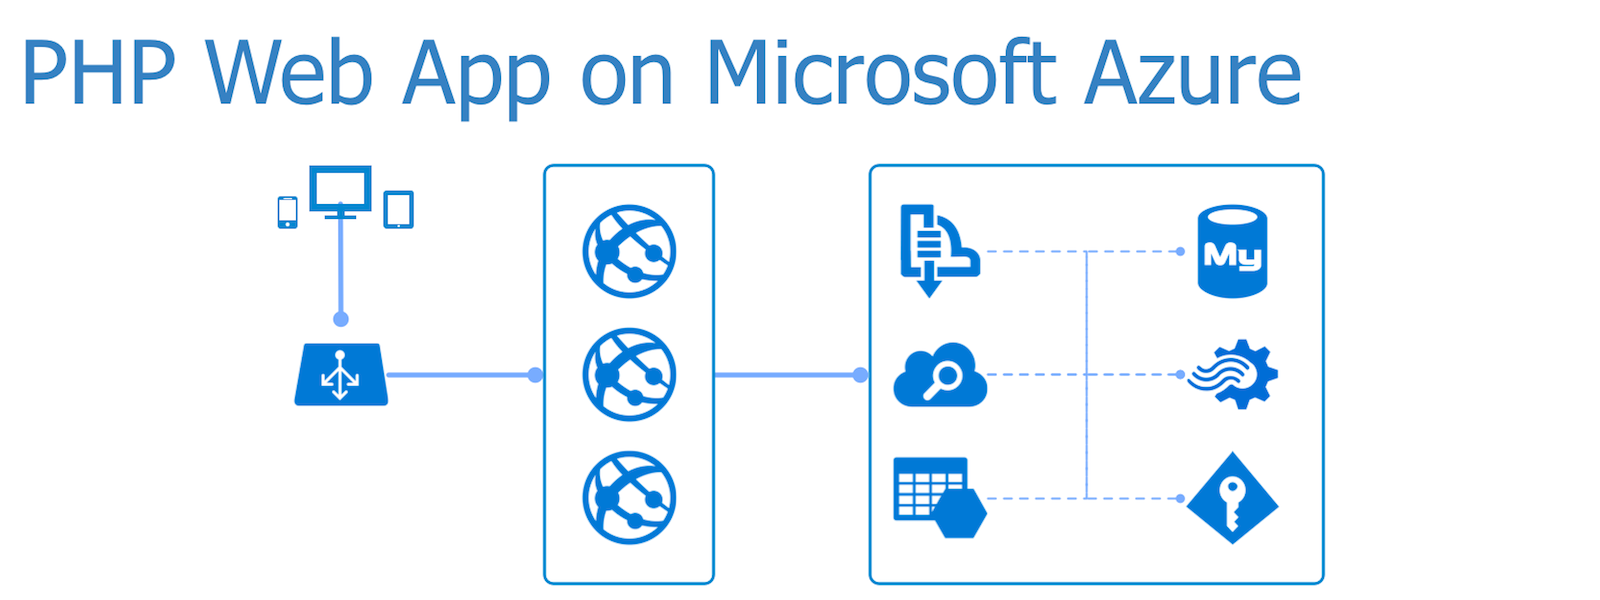 PHP Web Apps on Microsoft Azure